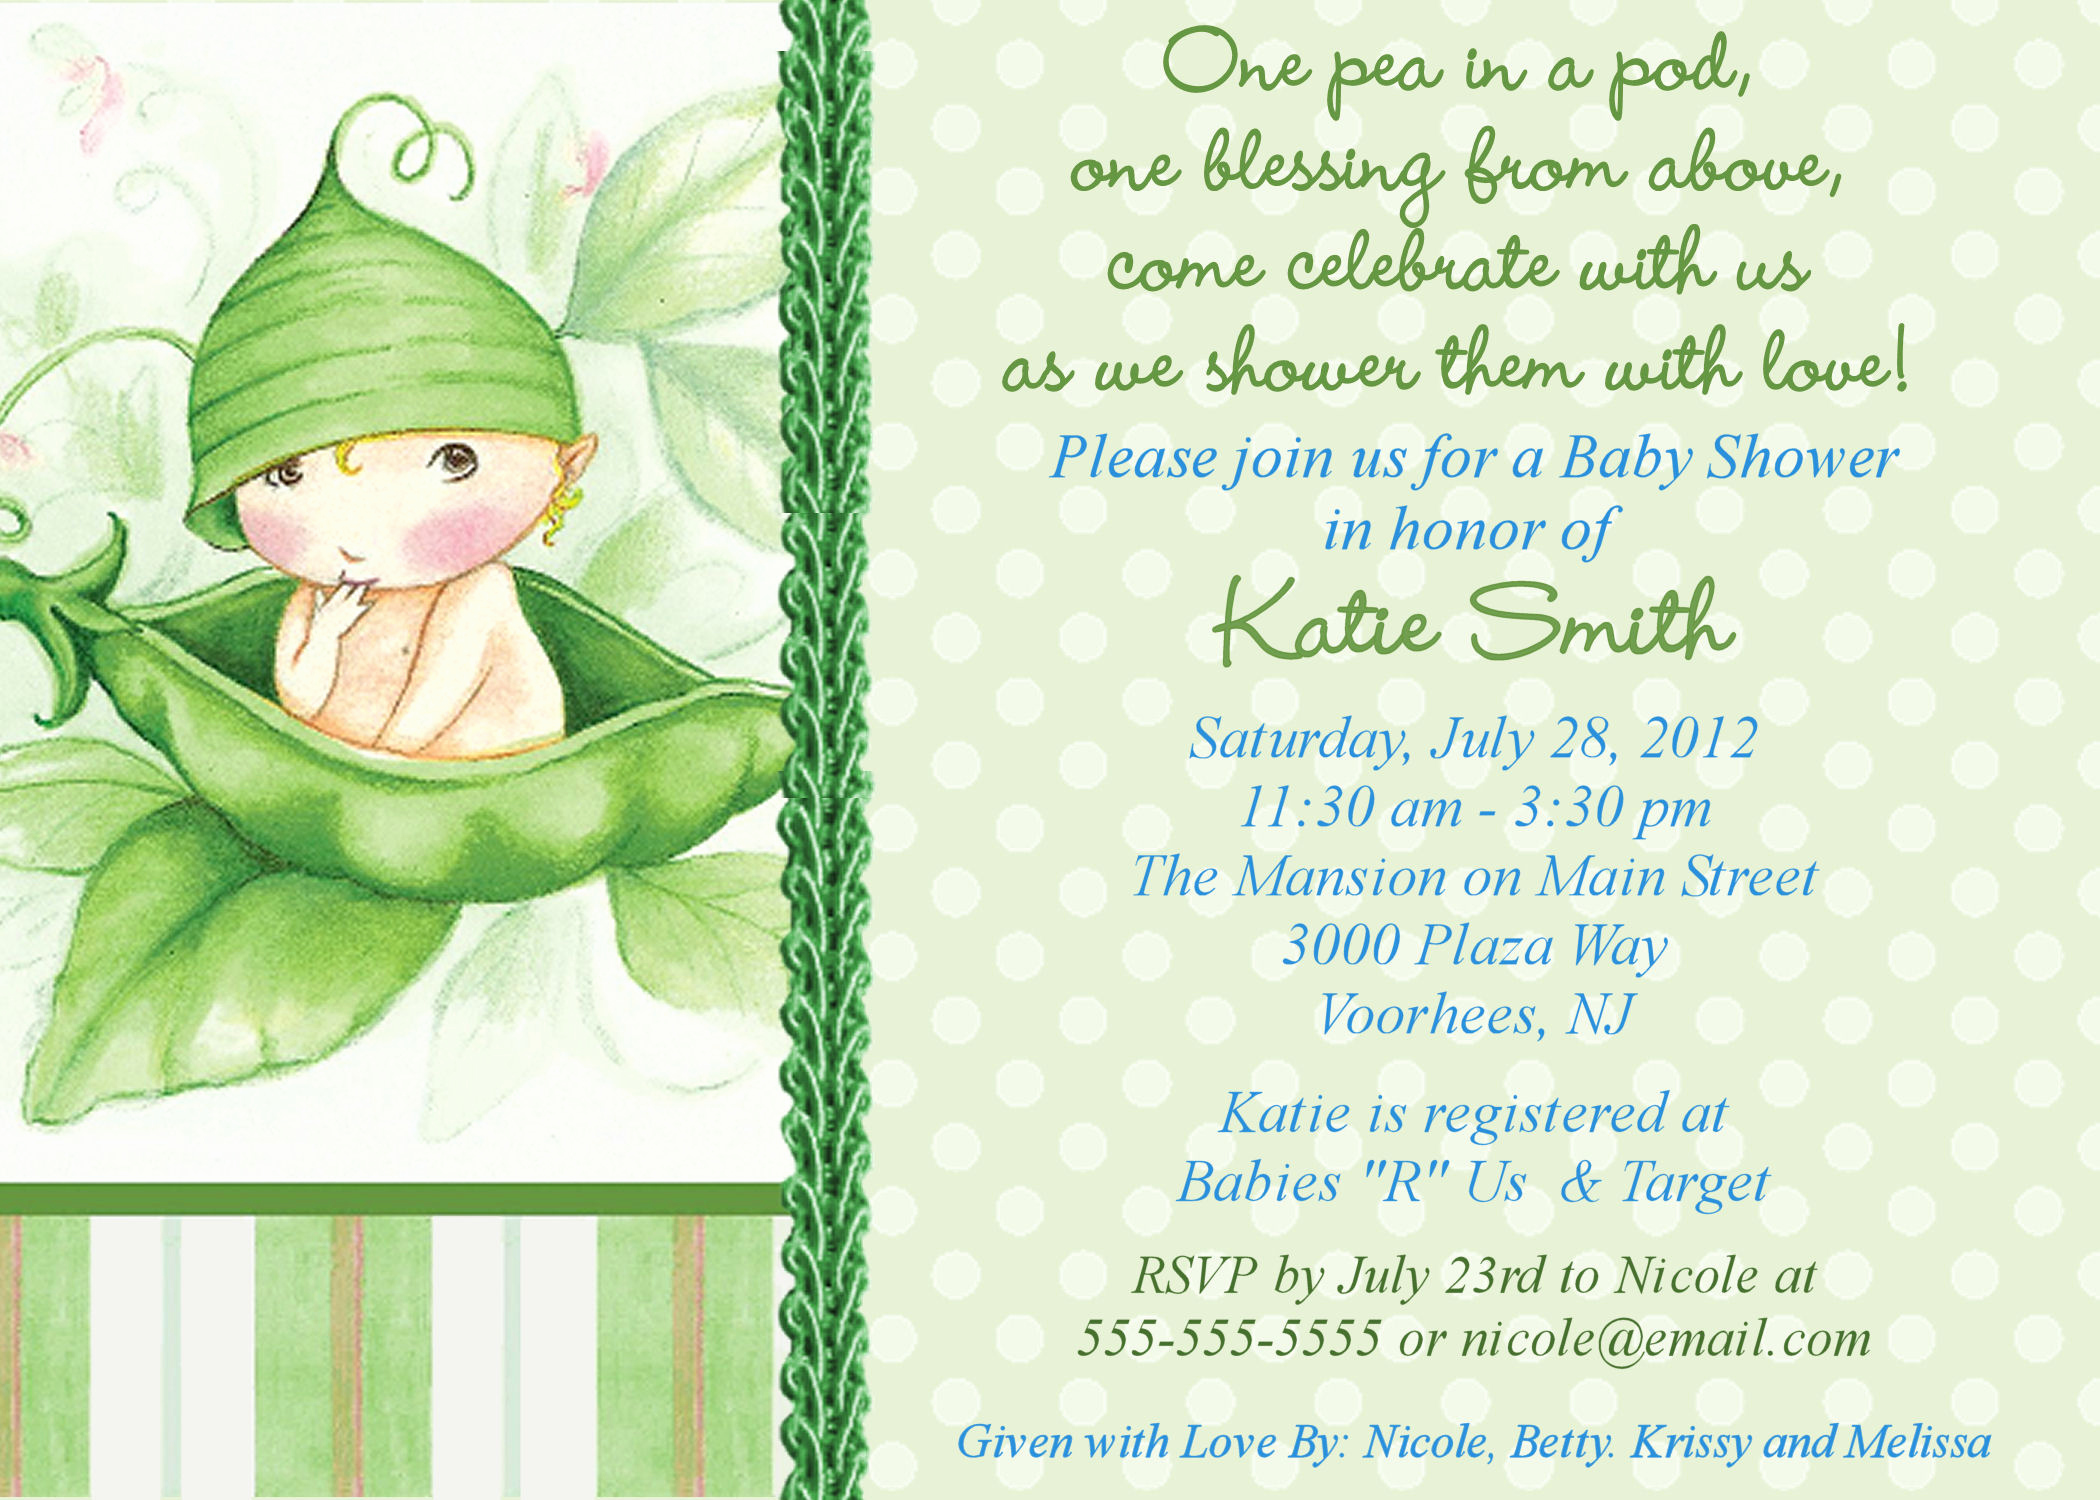 Baby Shower Invite Template Luxury Twin Baby Shower themes Ideas Pea In the Pod